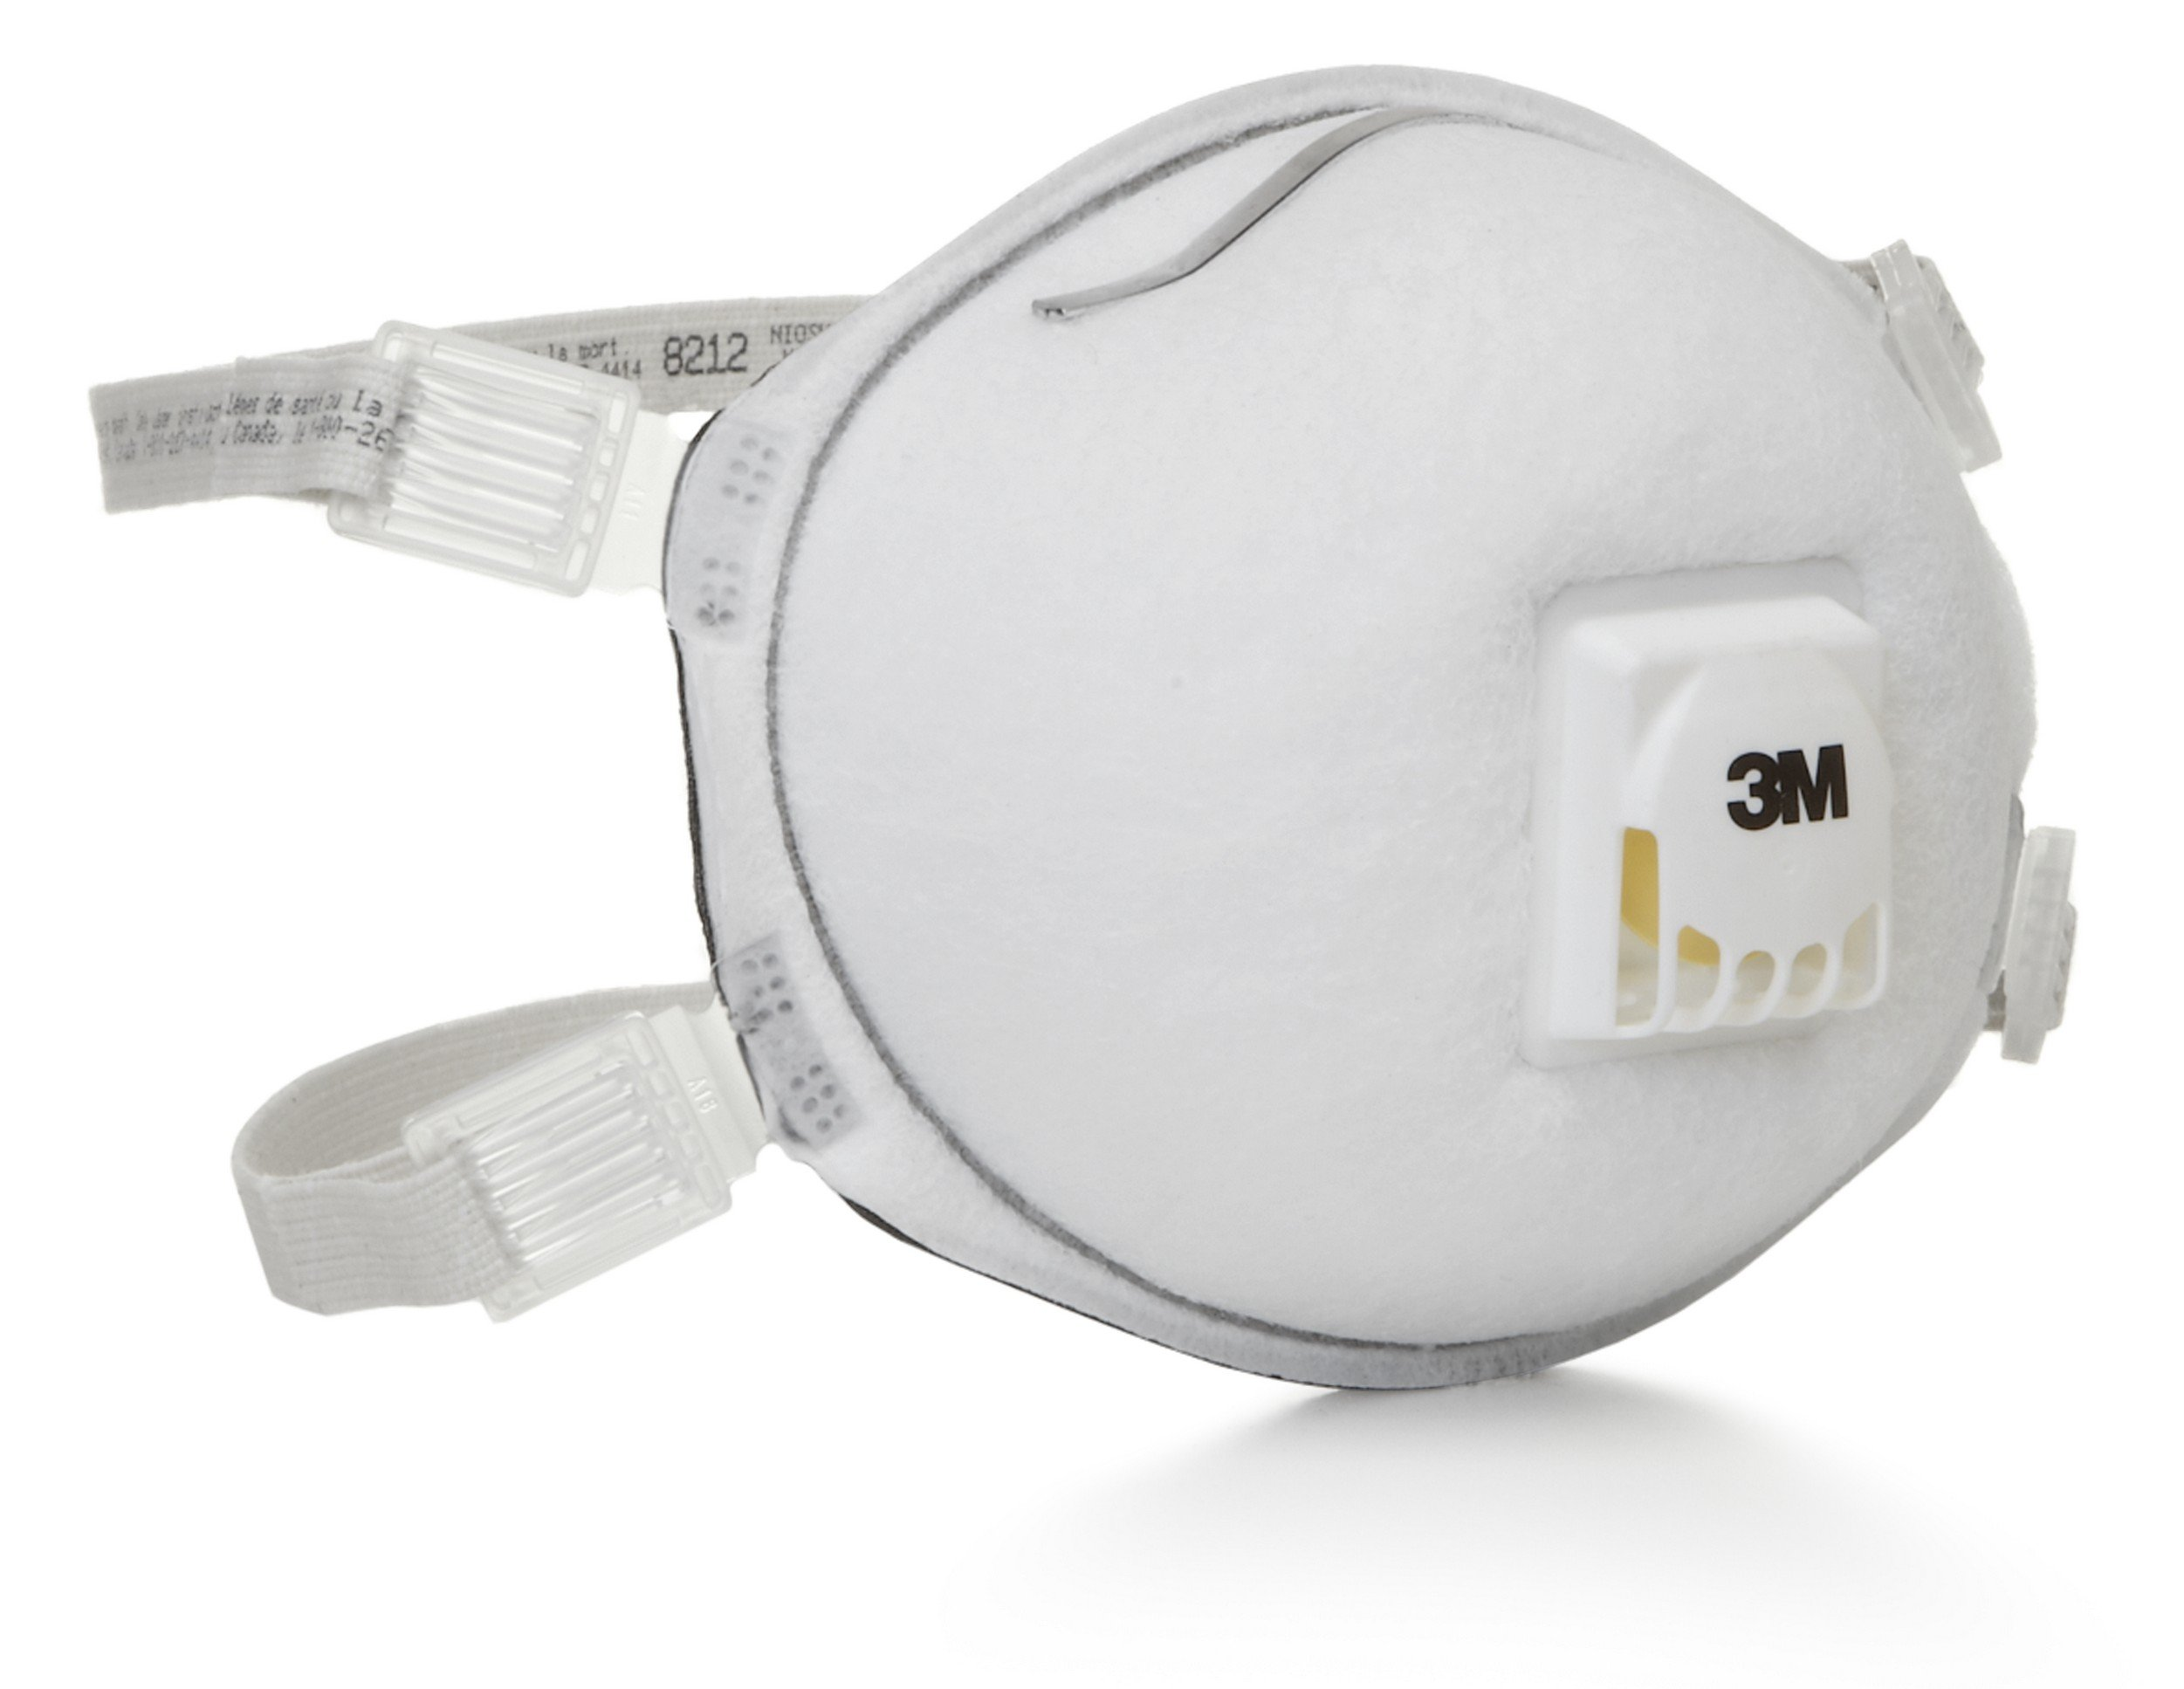 3M 54141 Particulate Welding Respirator 8212, N95, with Faceseal (Pack of 10) by 3M Personal Protective Equipment (Image #4)